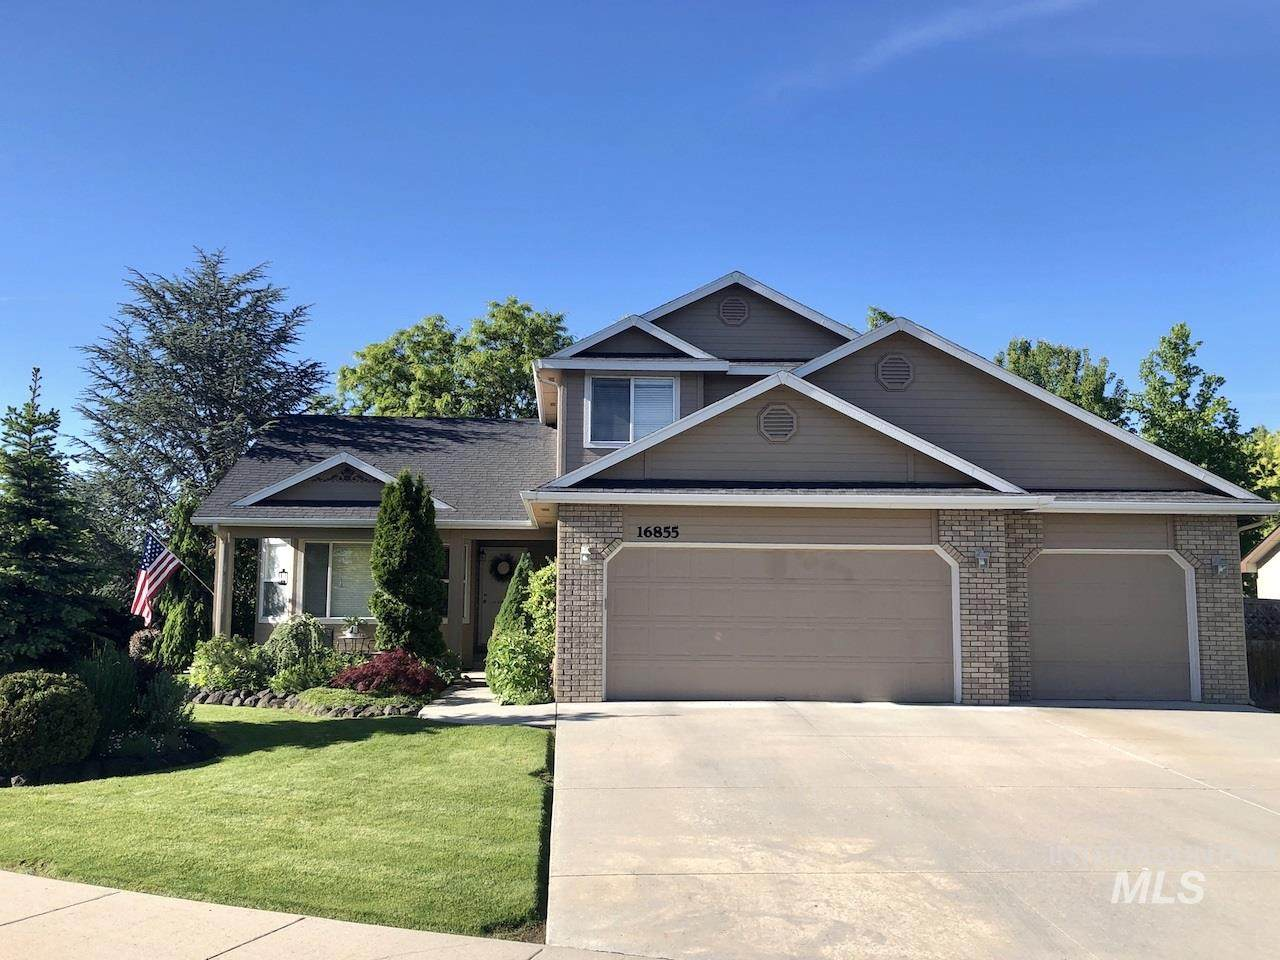 16855 Gentry Dr - Photo 1